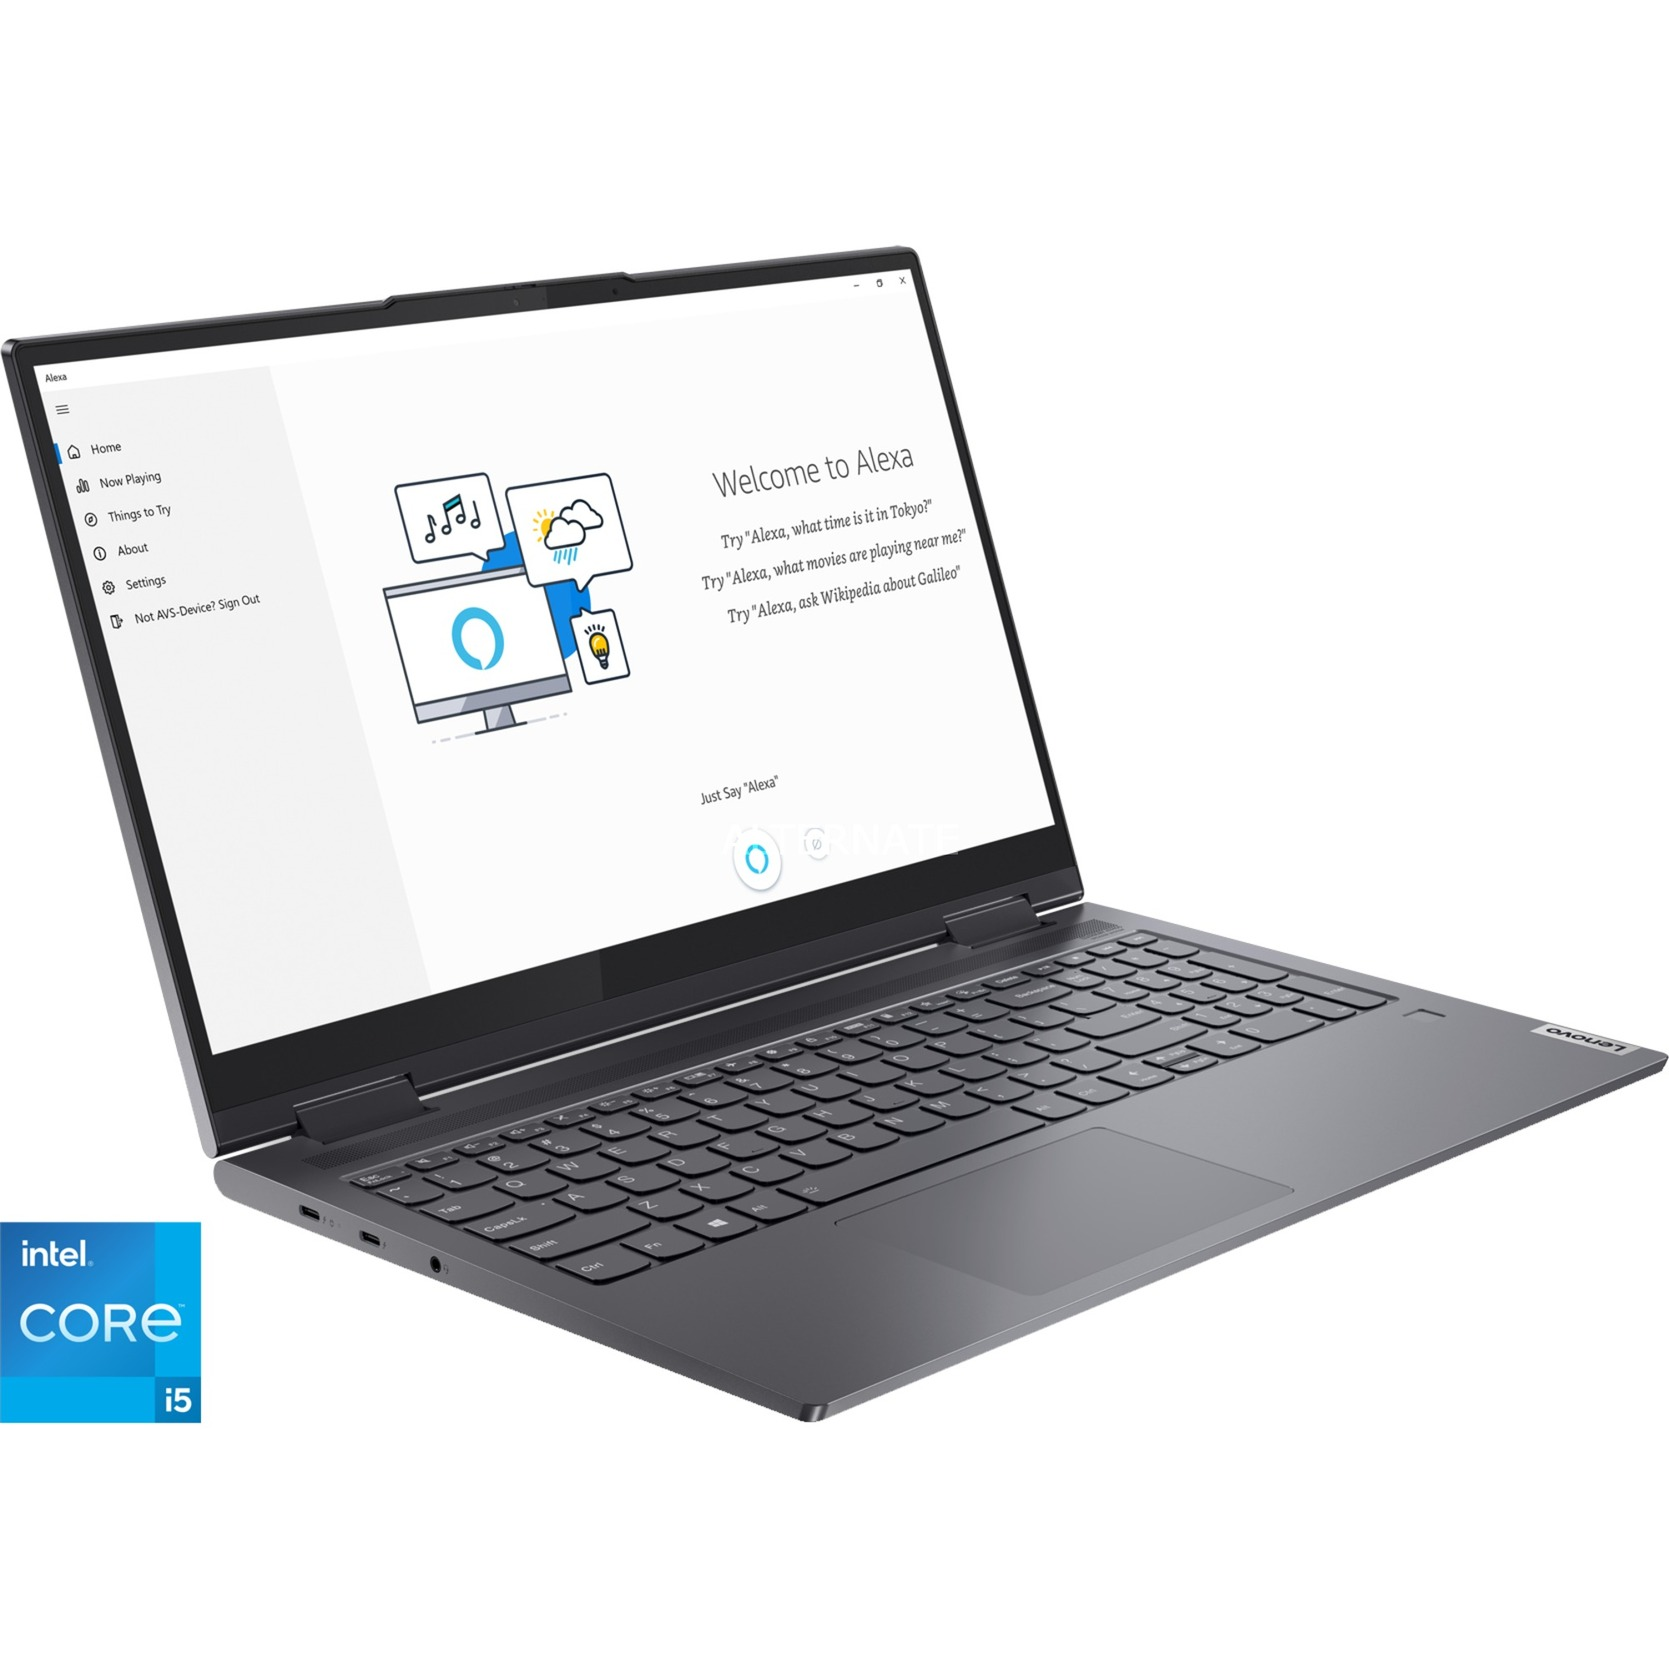 Lenovo Yoga 7 15ITL5 (82BJ006NGE), Notebook